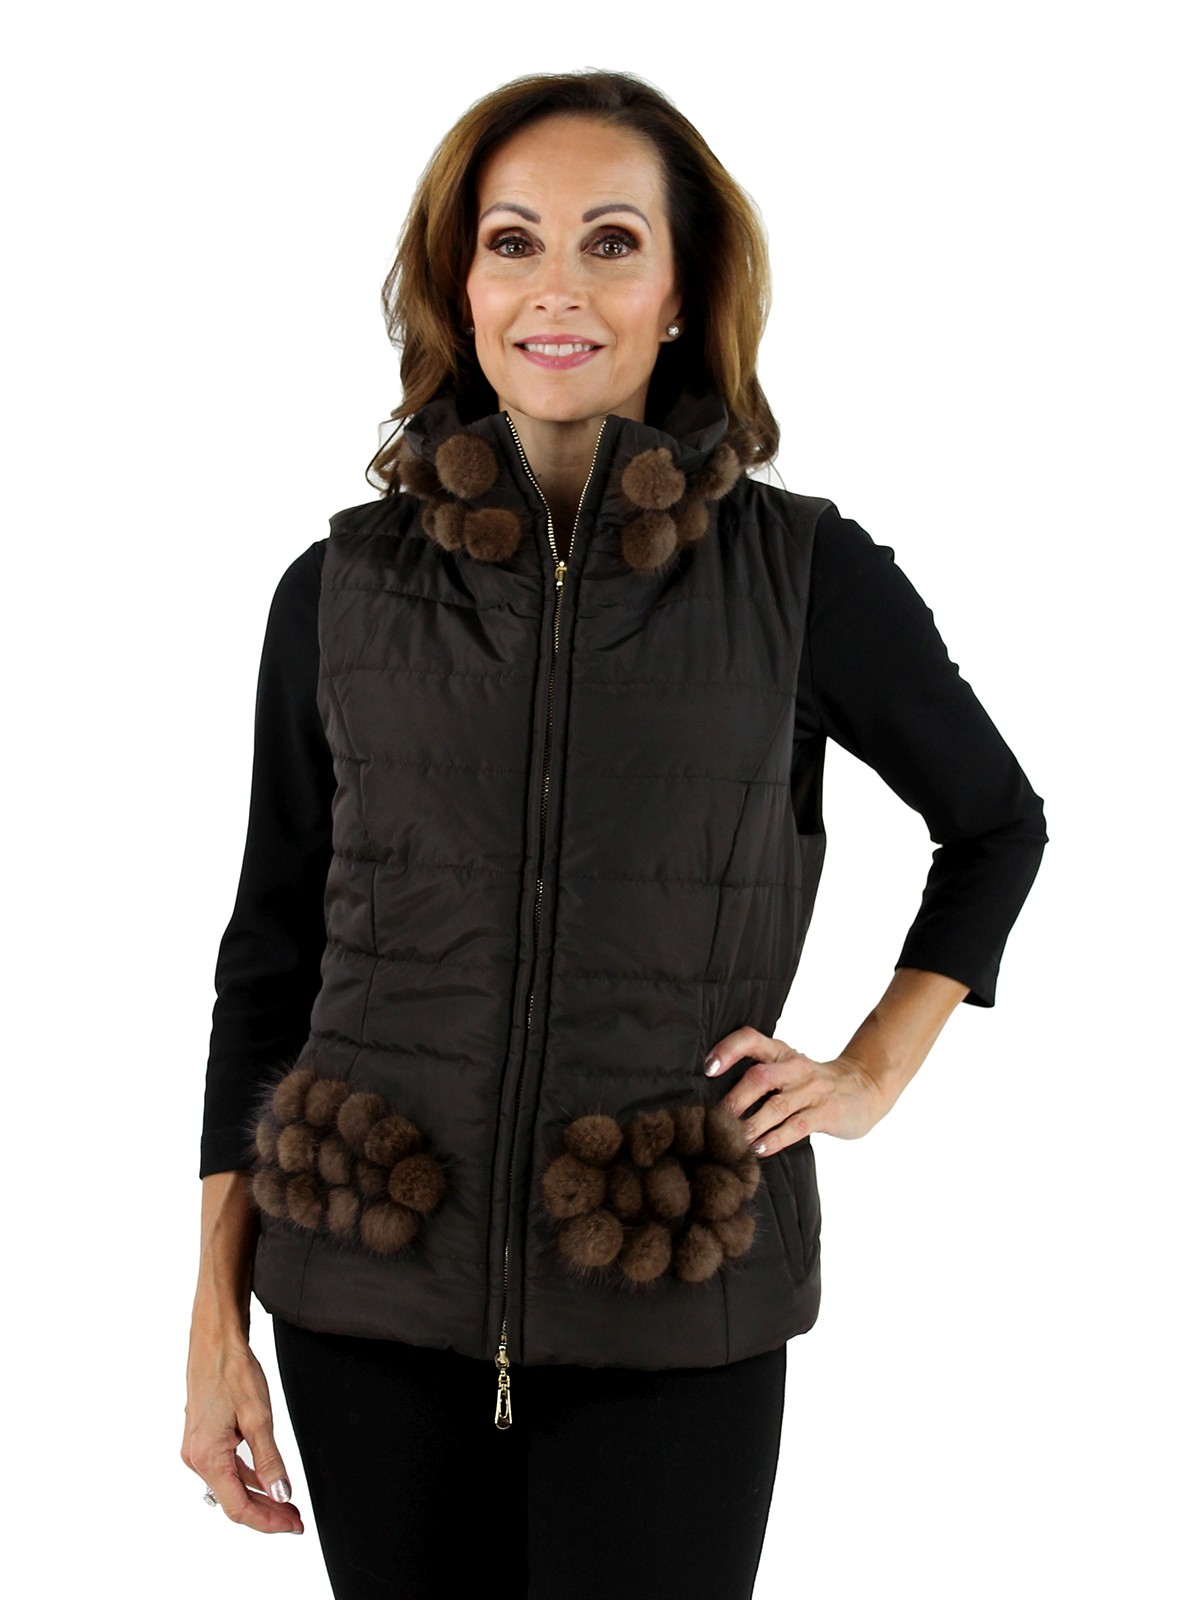 DiOMi Woman's Brown Fabric and Mink Fur Vest